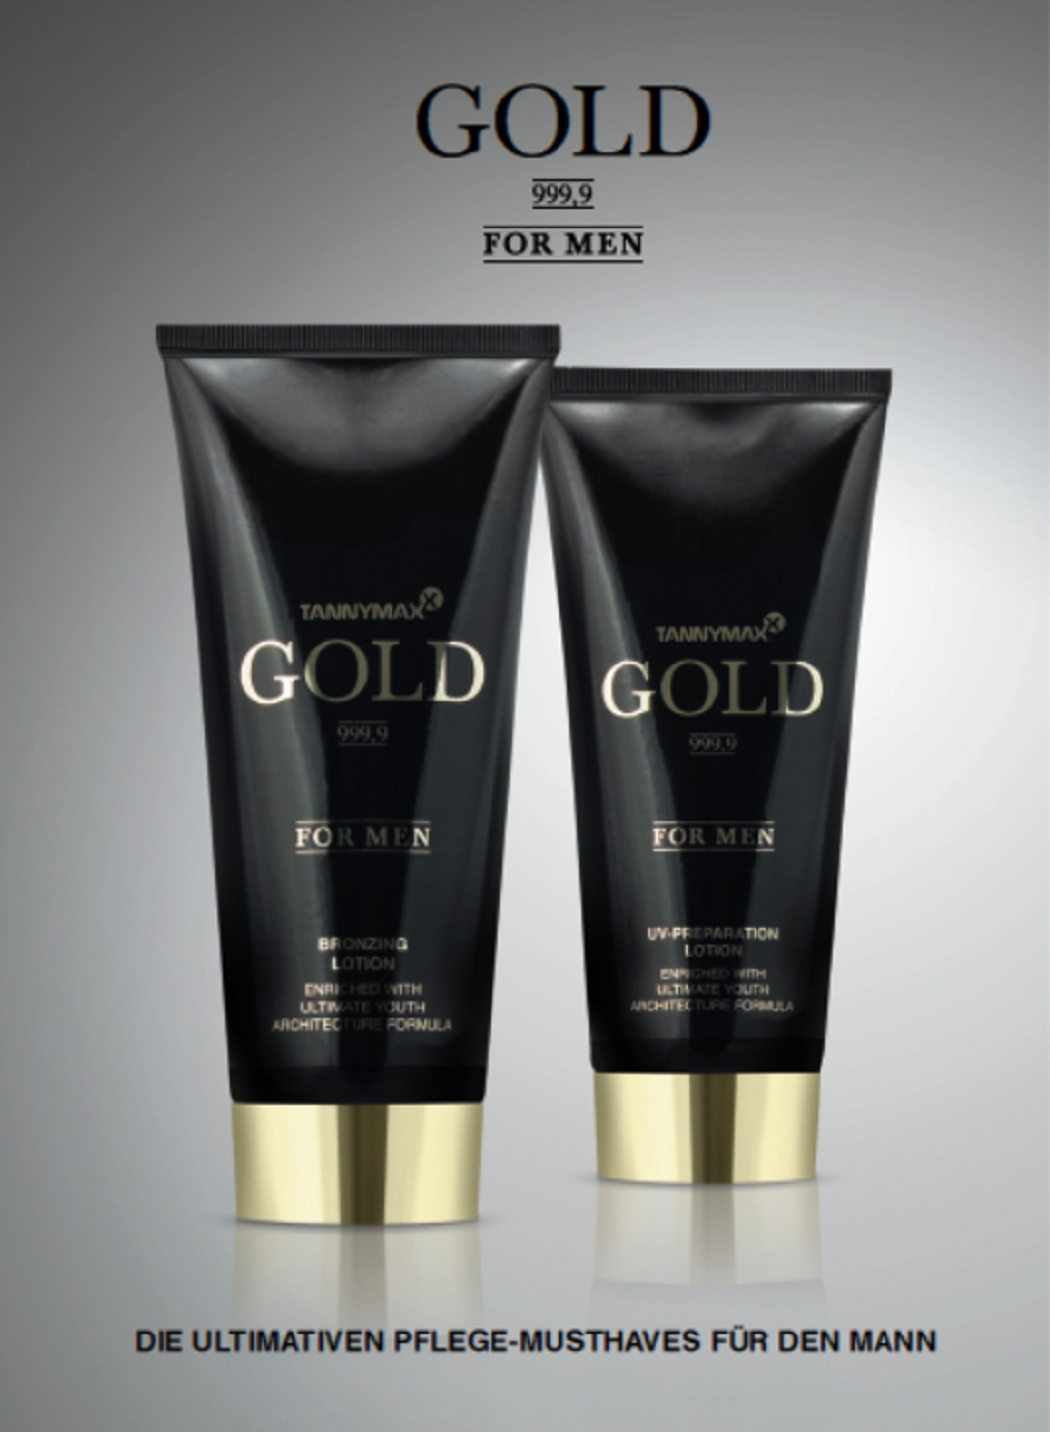 Tannymaxx Gold For Men2